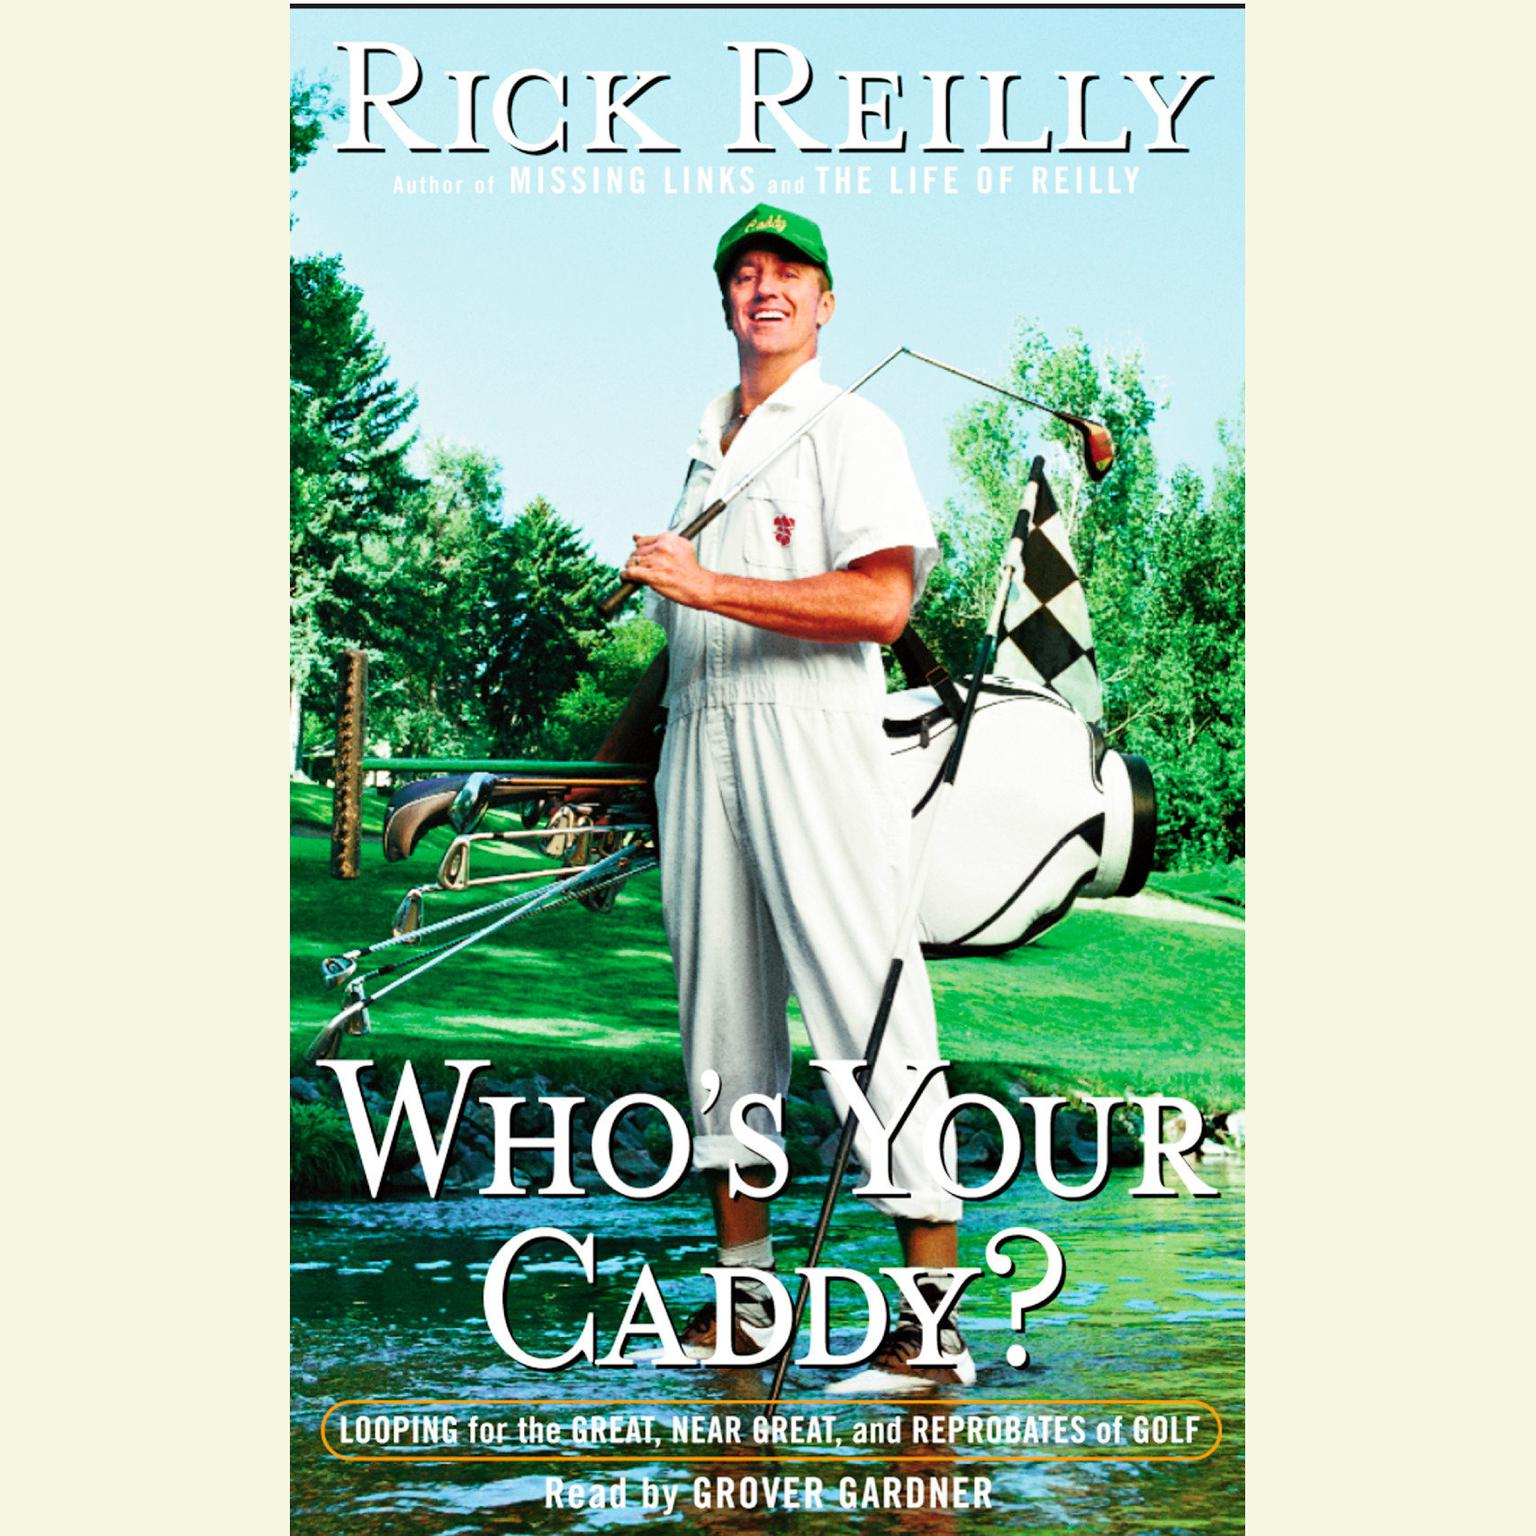 Printable Who's Your Caddy?: Looping for the Great, Near Great, and Reprobates of Golf Audiobook Cover Art